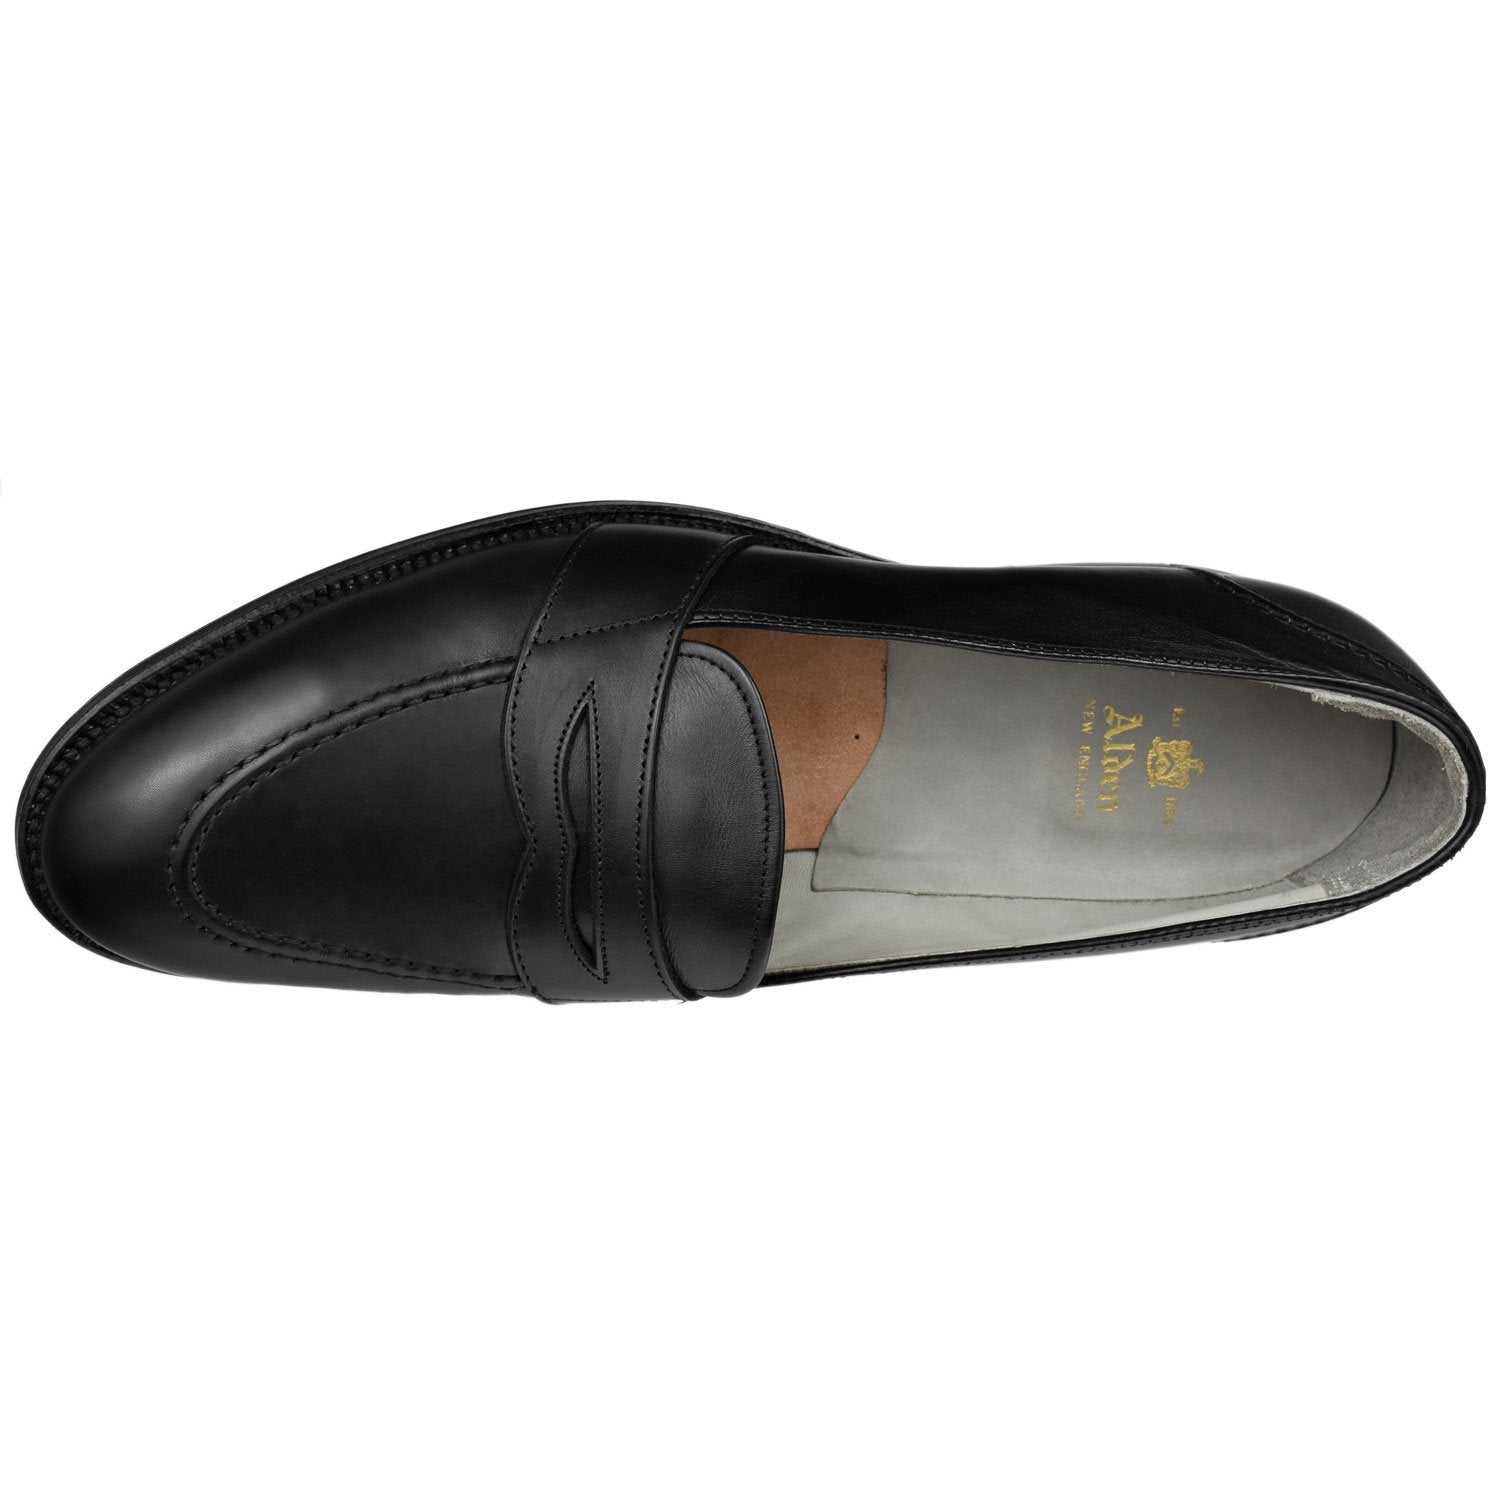 Men's Dress Penny Loafer - Oak Hall